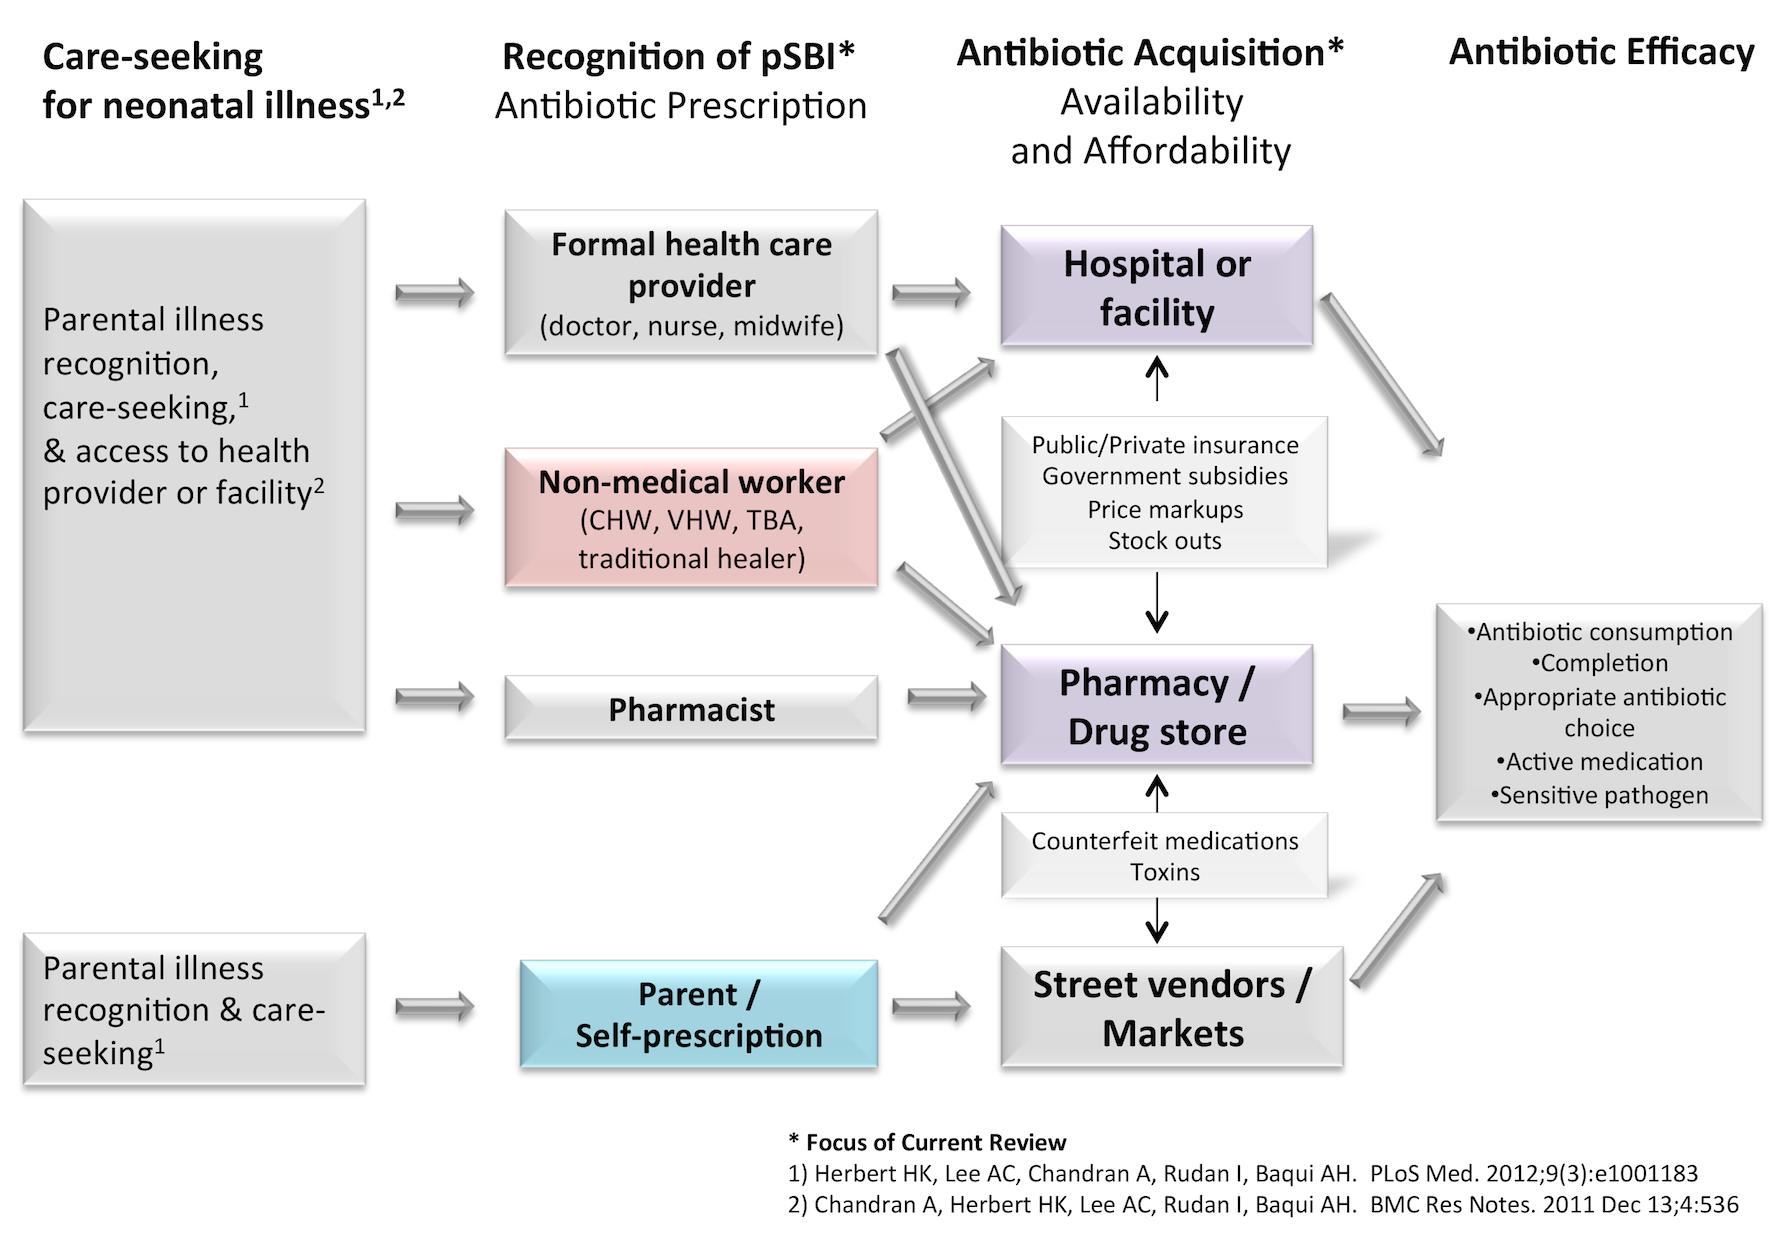 Conceptual model of access to antibiotics for newborns with infection.